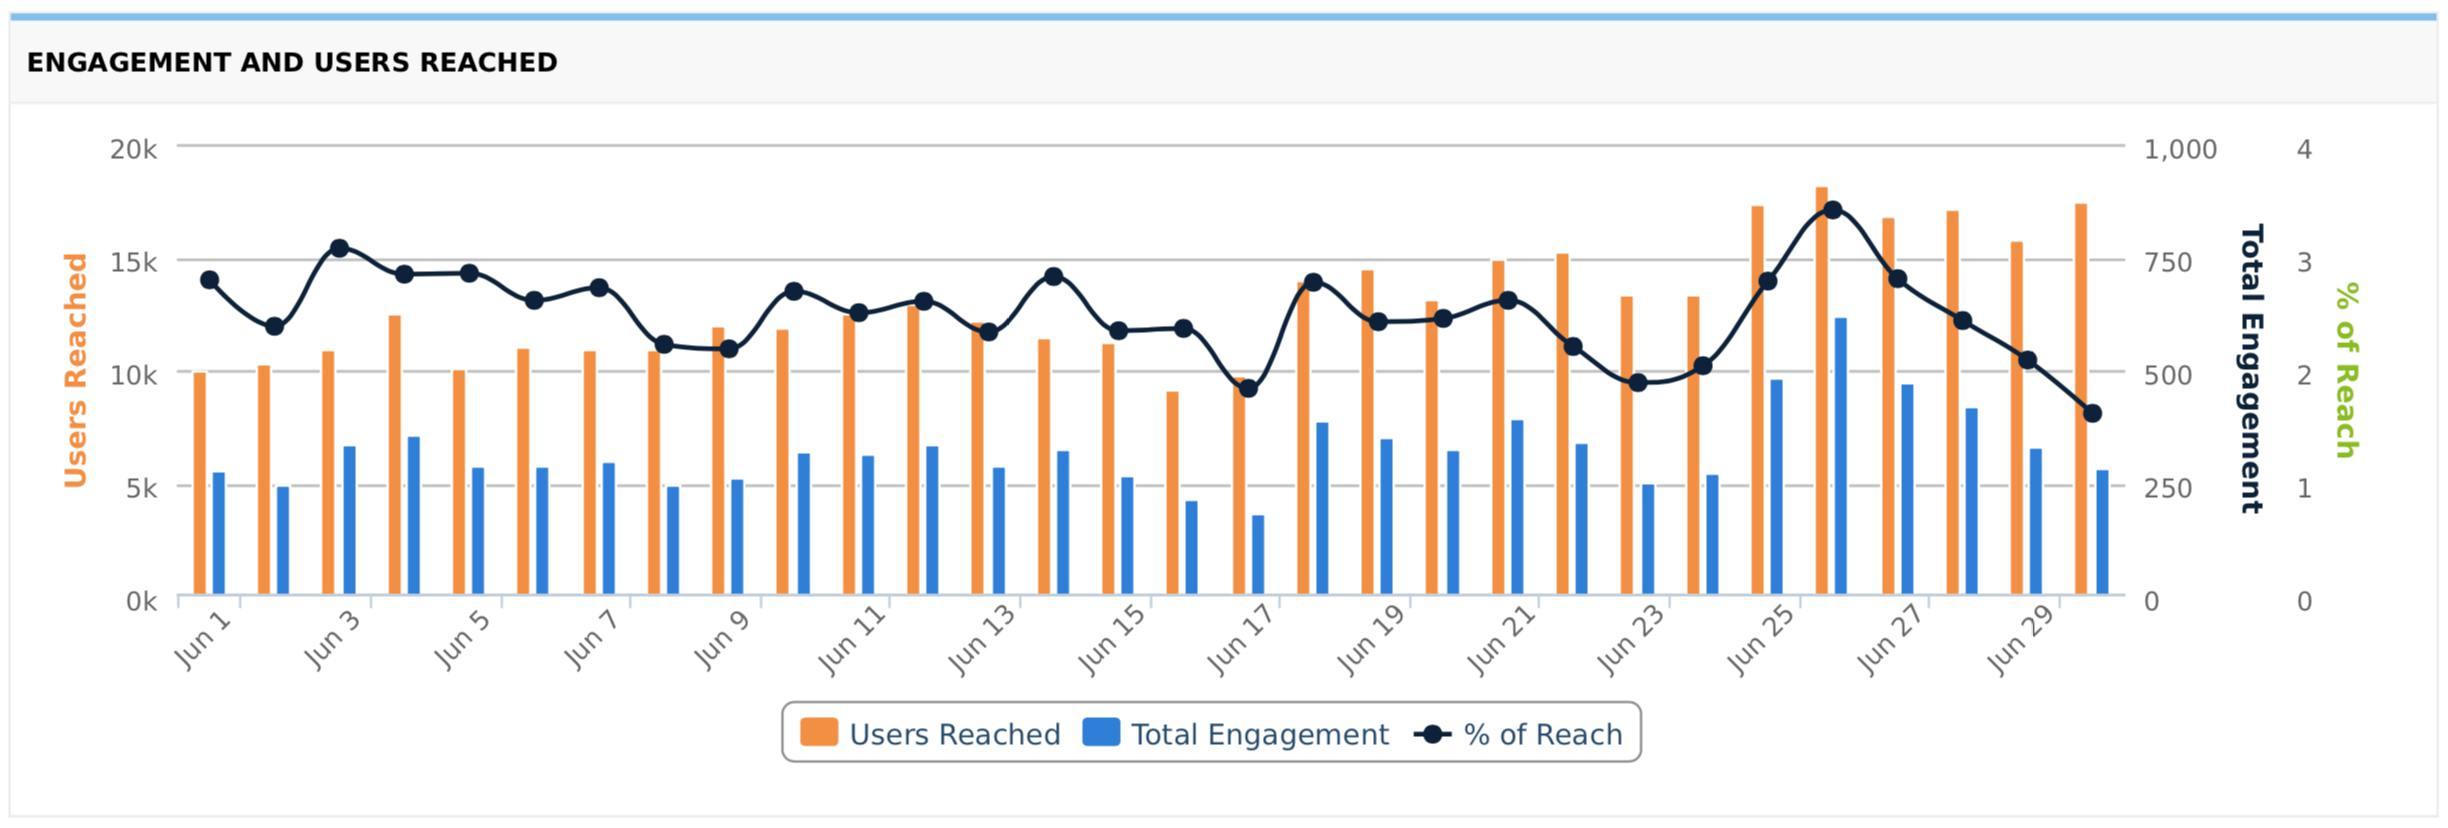 Engagement and Users Reached